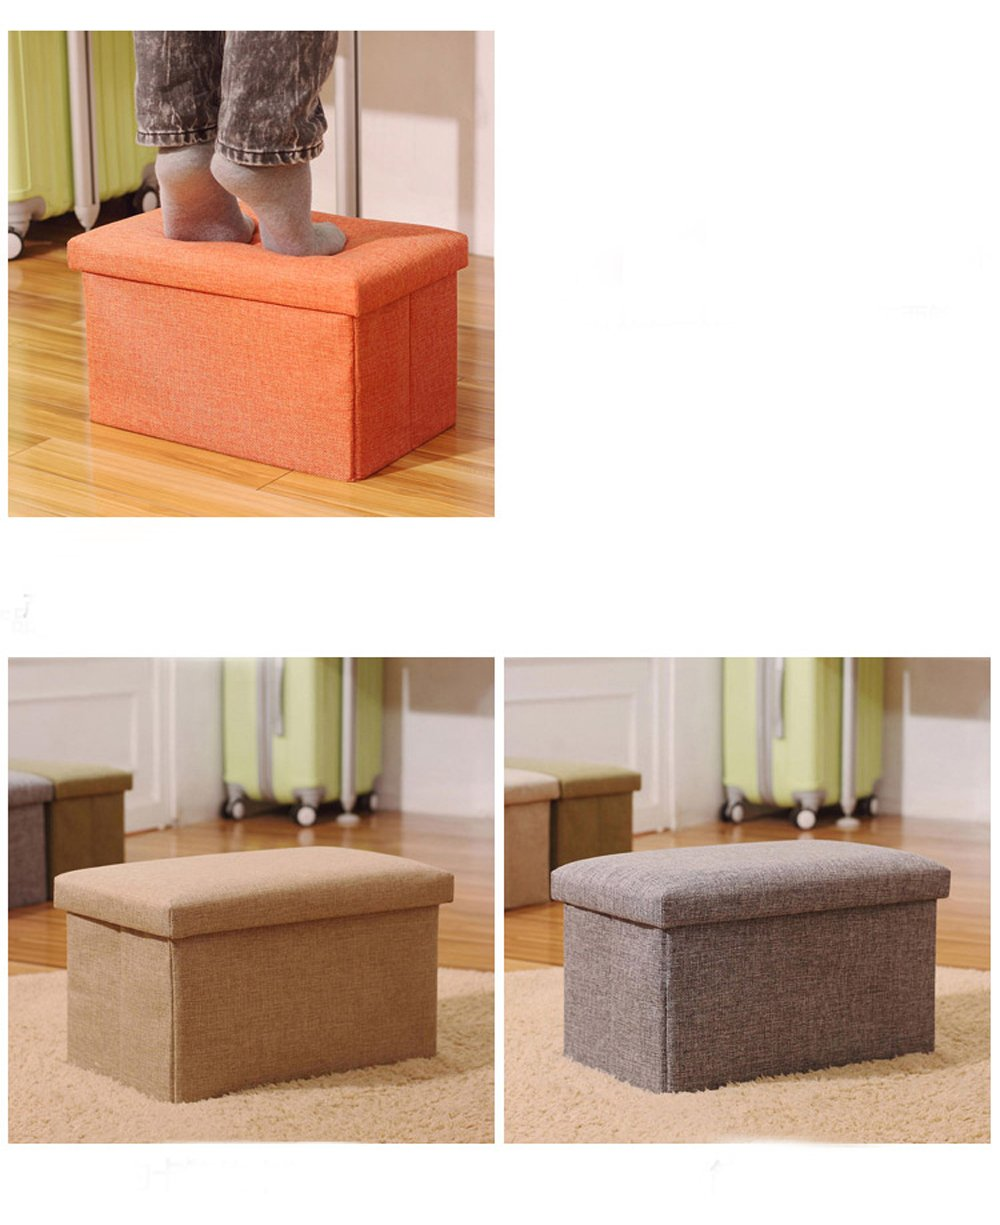 Orange, 16x10x10 Inoutdoorkit Storage Ottoman